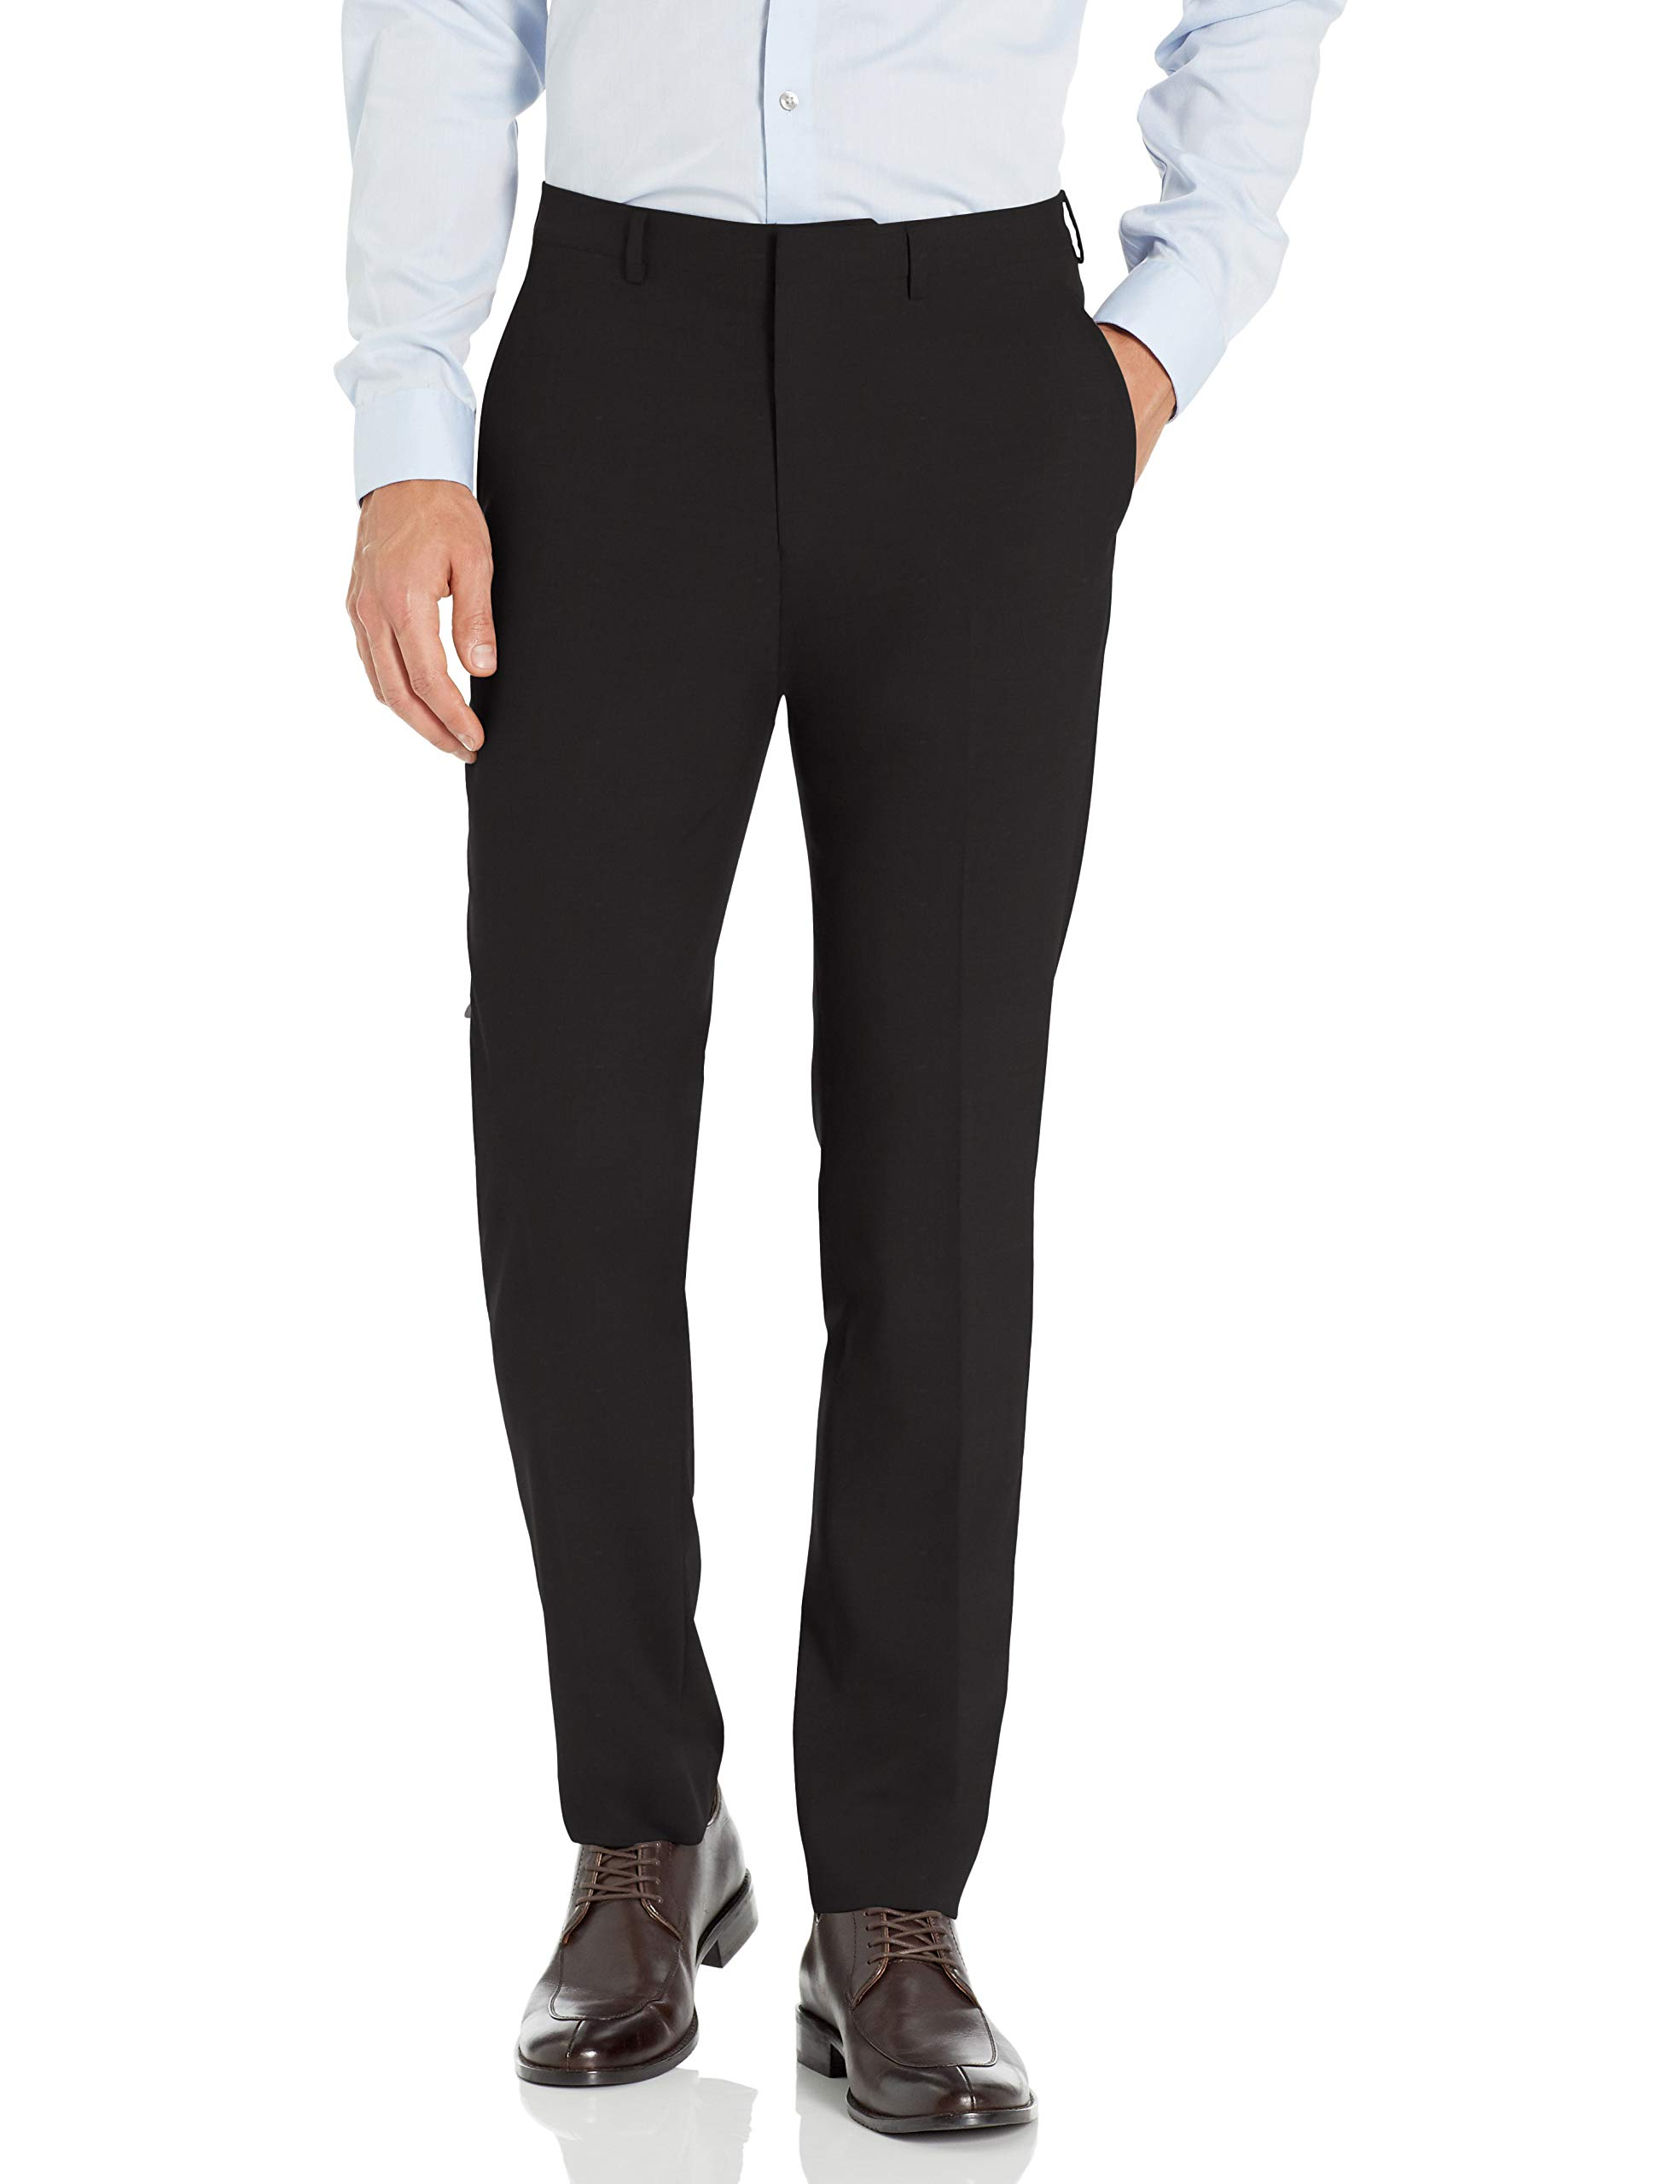 Cole Haan Men's Slim fit Stretch Suit Separates (Coat and Pant), Black, 36Wx30L by Cole Haan